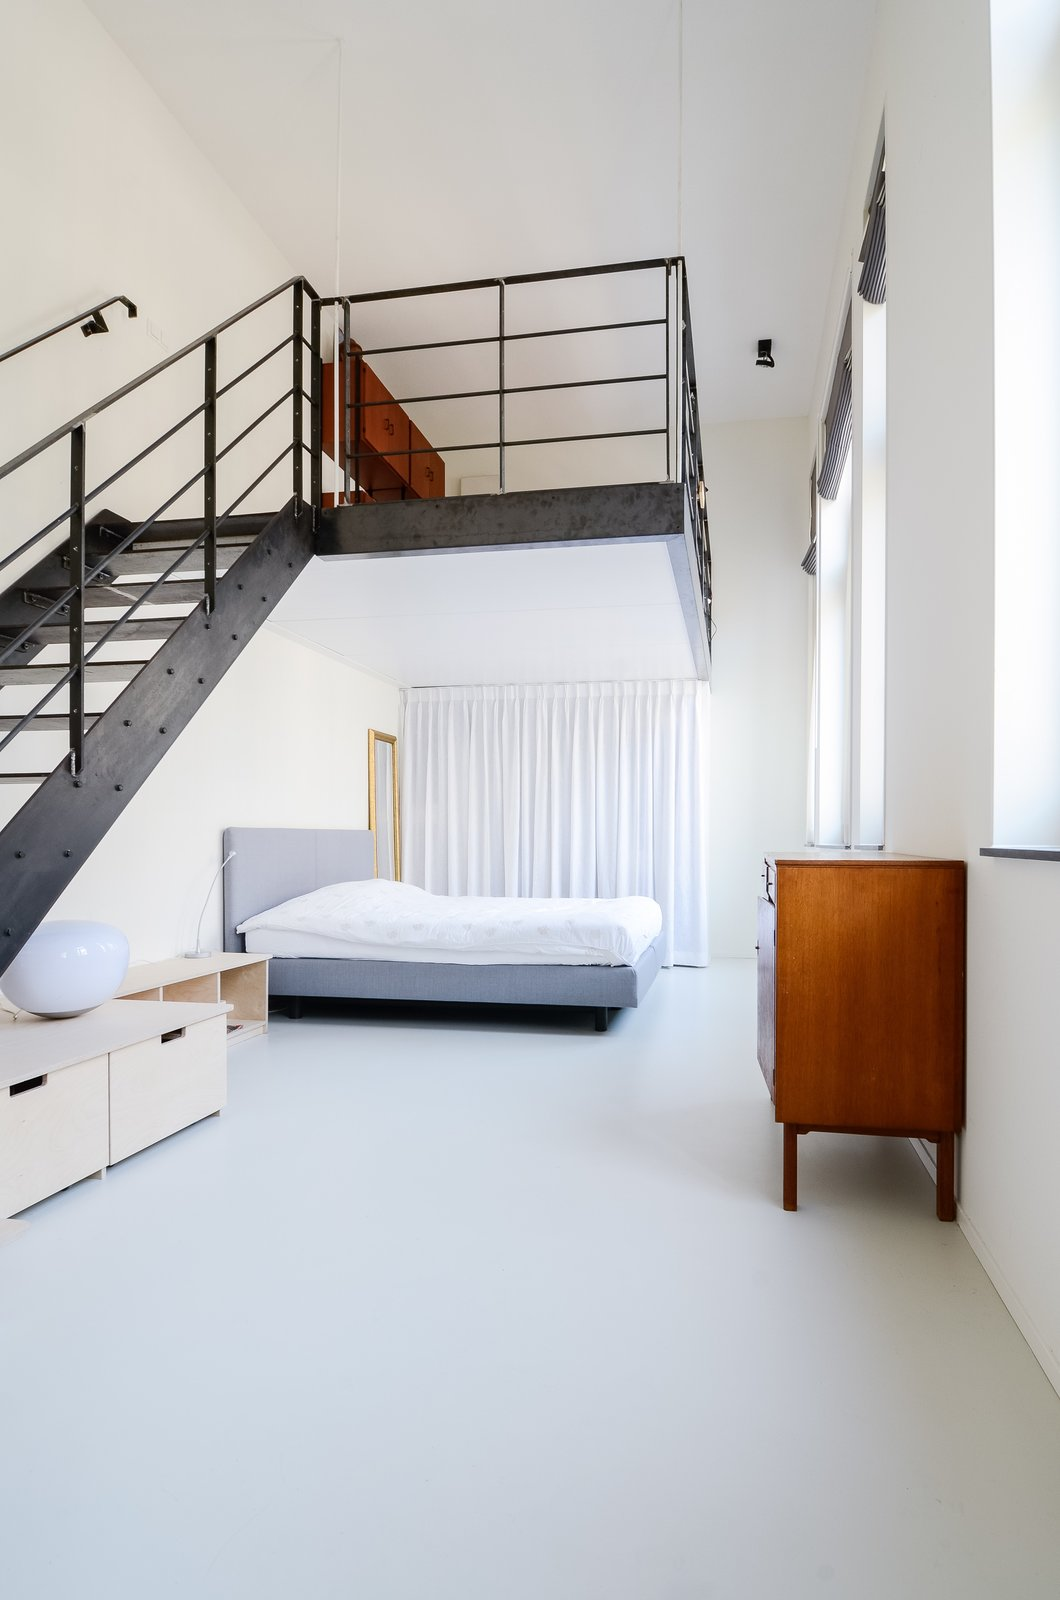 Once a teacher's lounge, the master bedroom now occupies the first-floor space. A hot rolled steel staircase leads to the lofted second-floor, an addition which brought more livable square footage to the overall program.  Bedrooms by Dwell from The Schoolhouse